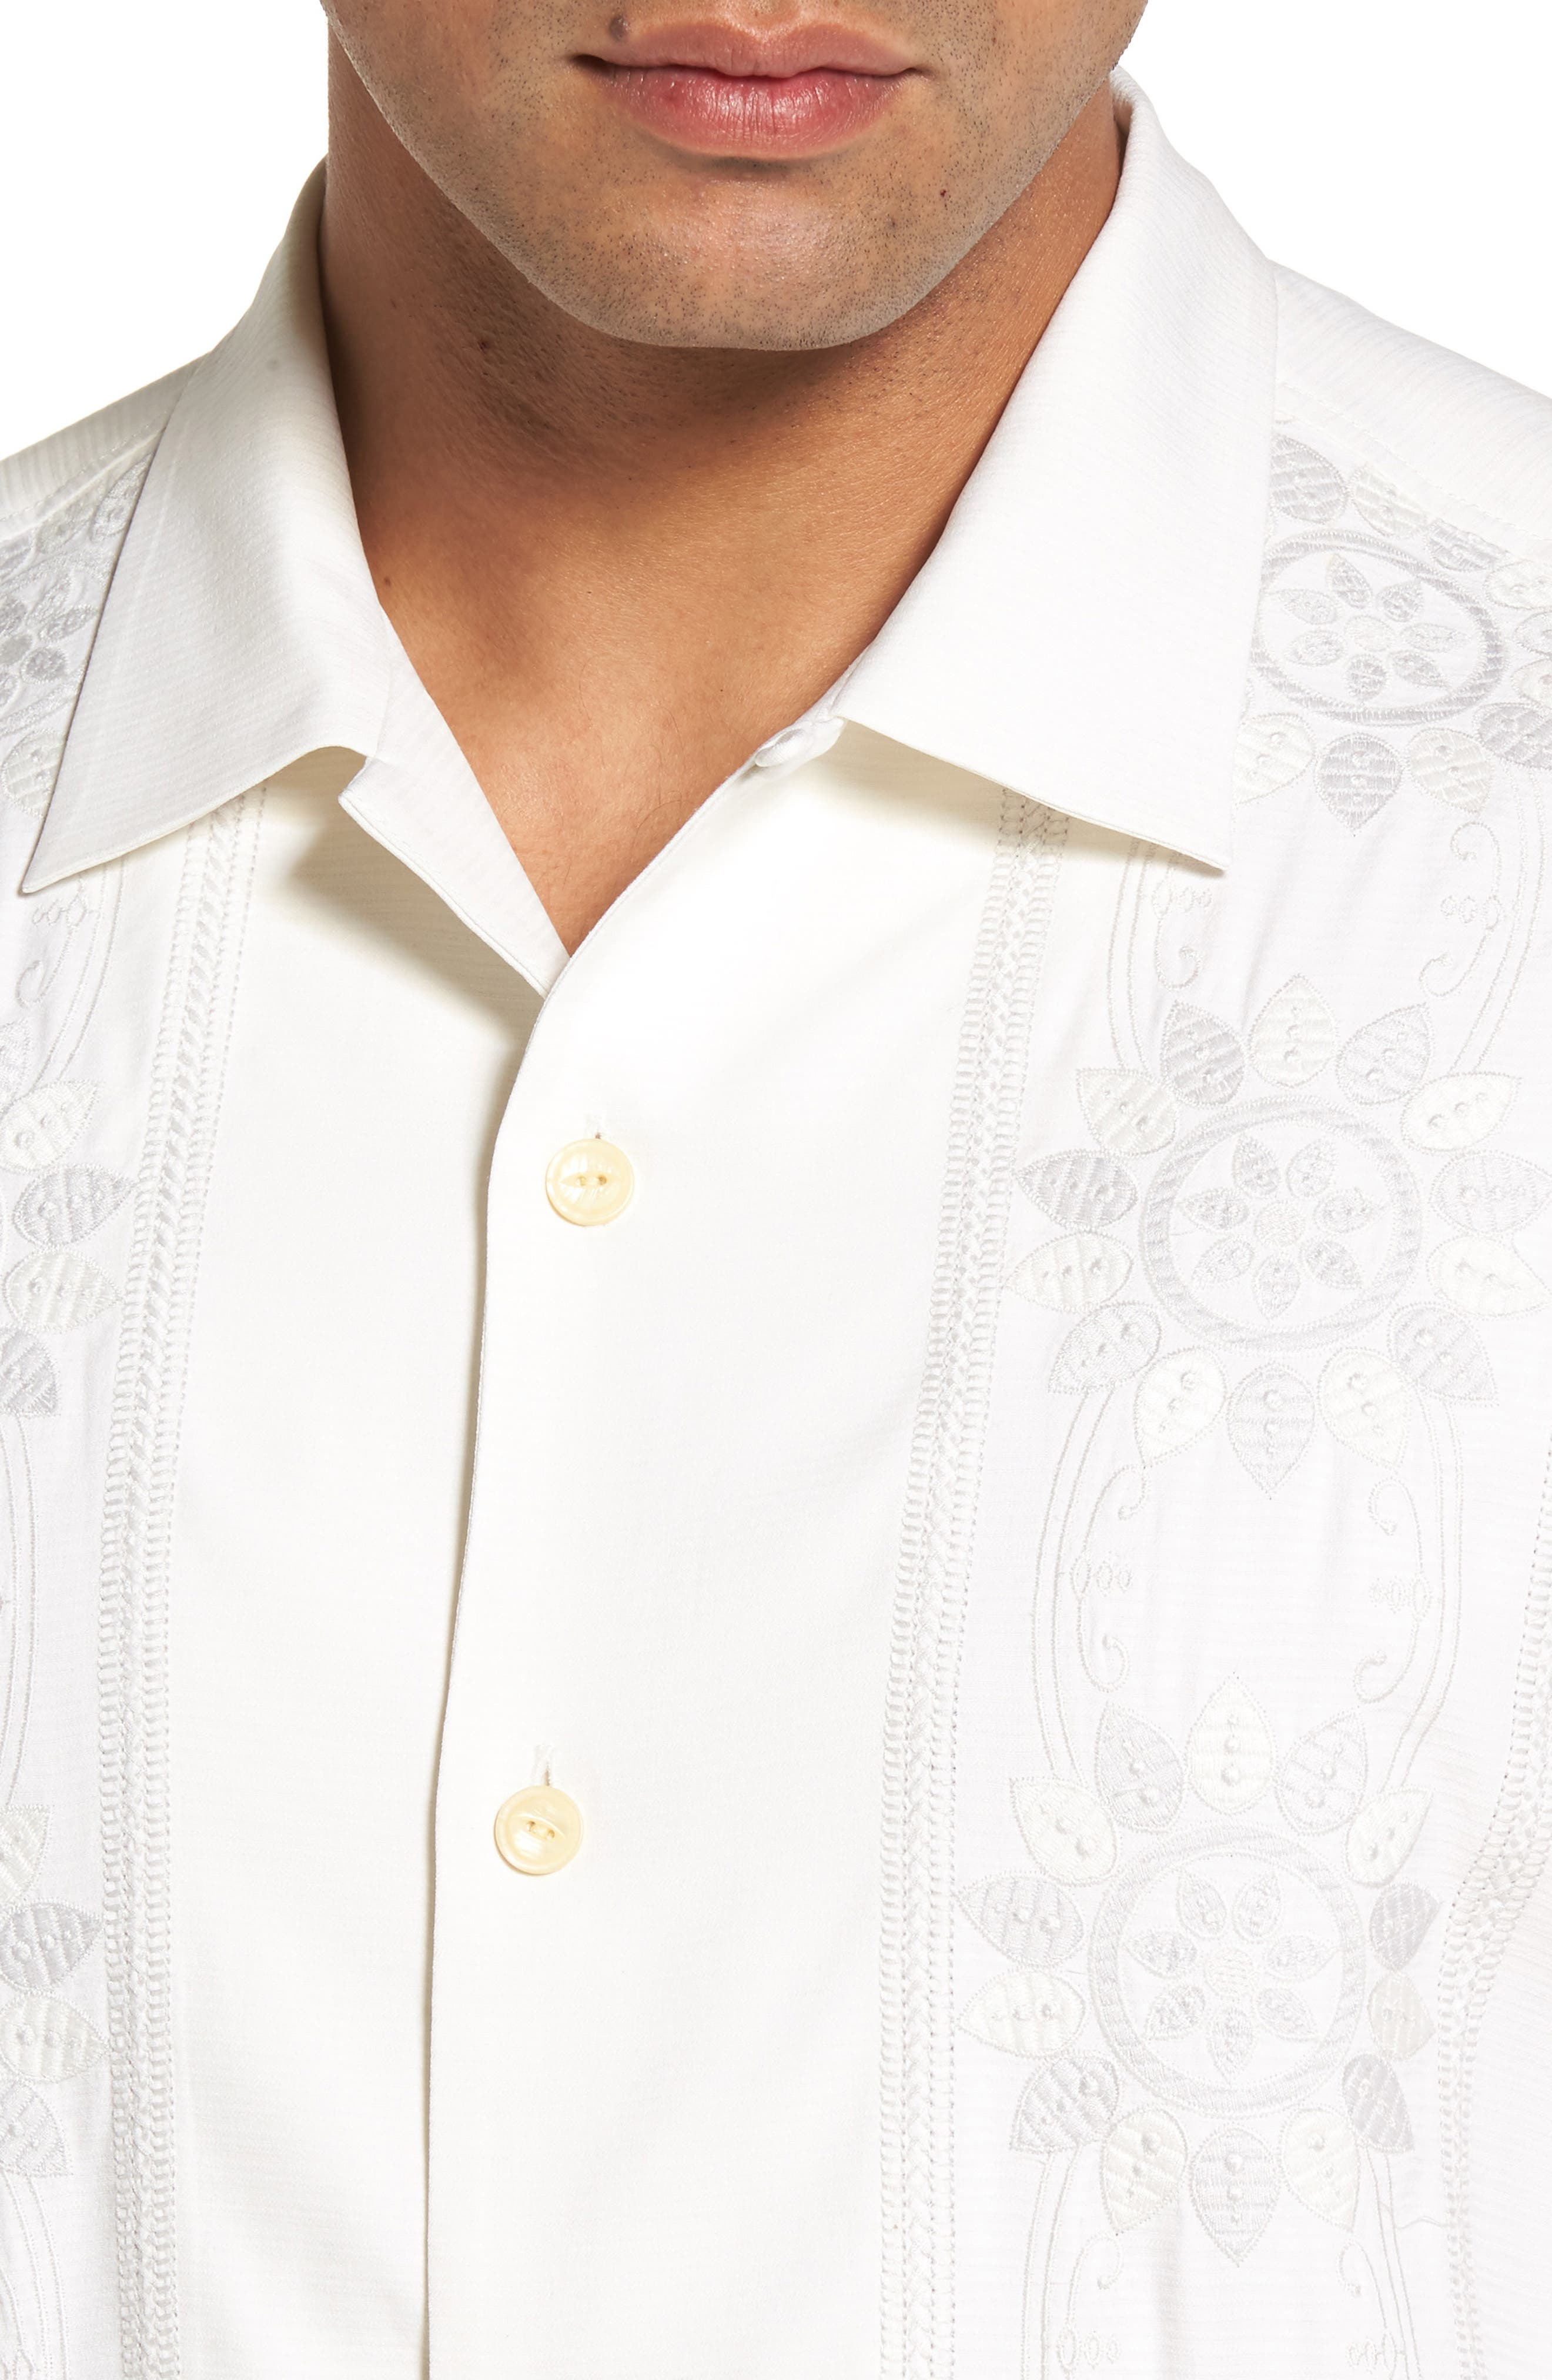 Tangier Tiles Embroidered Silk Woven Shirt,                             Alternate thumbnail 4, color,